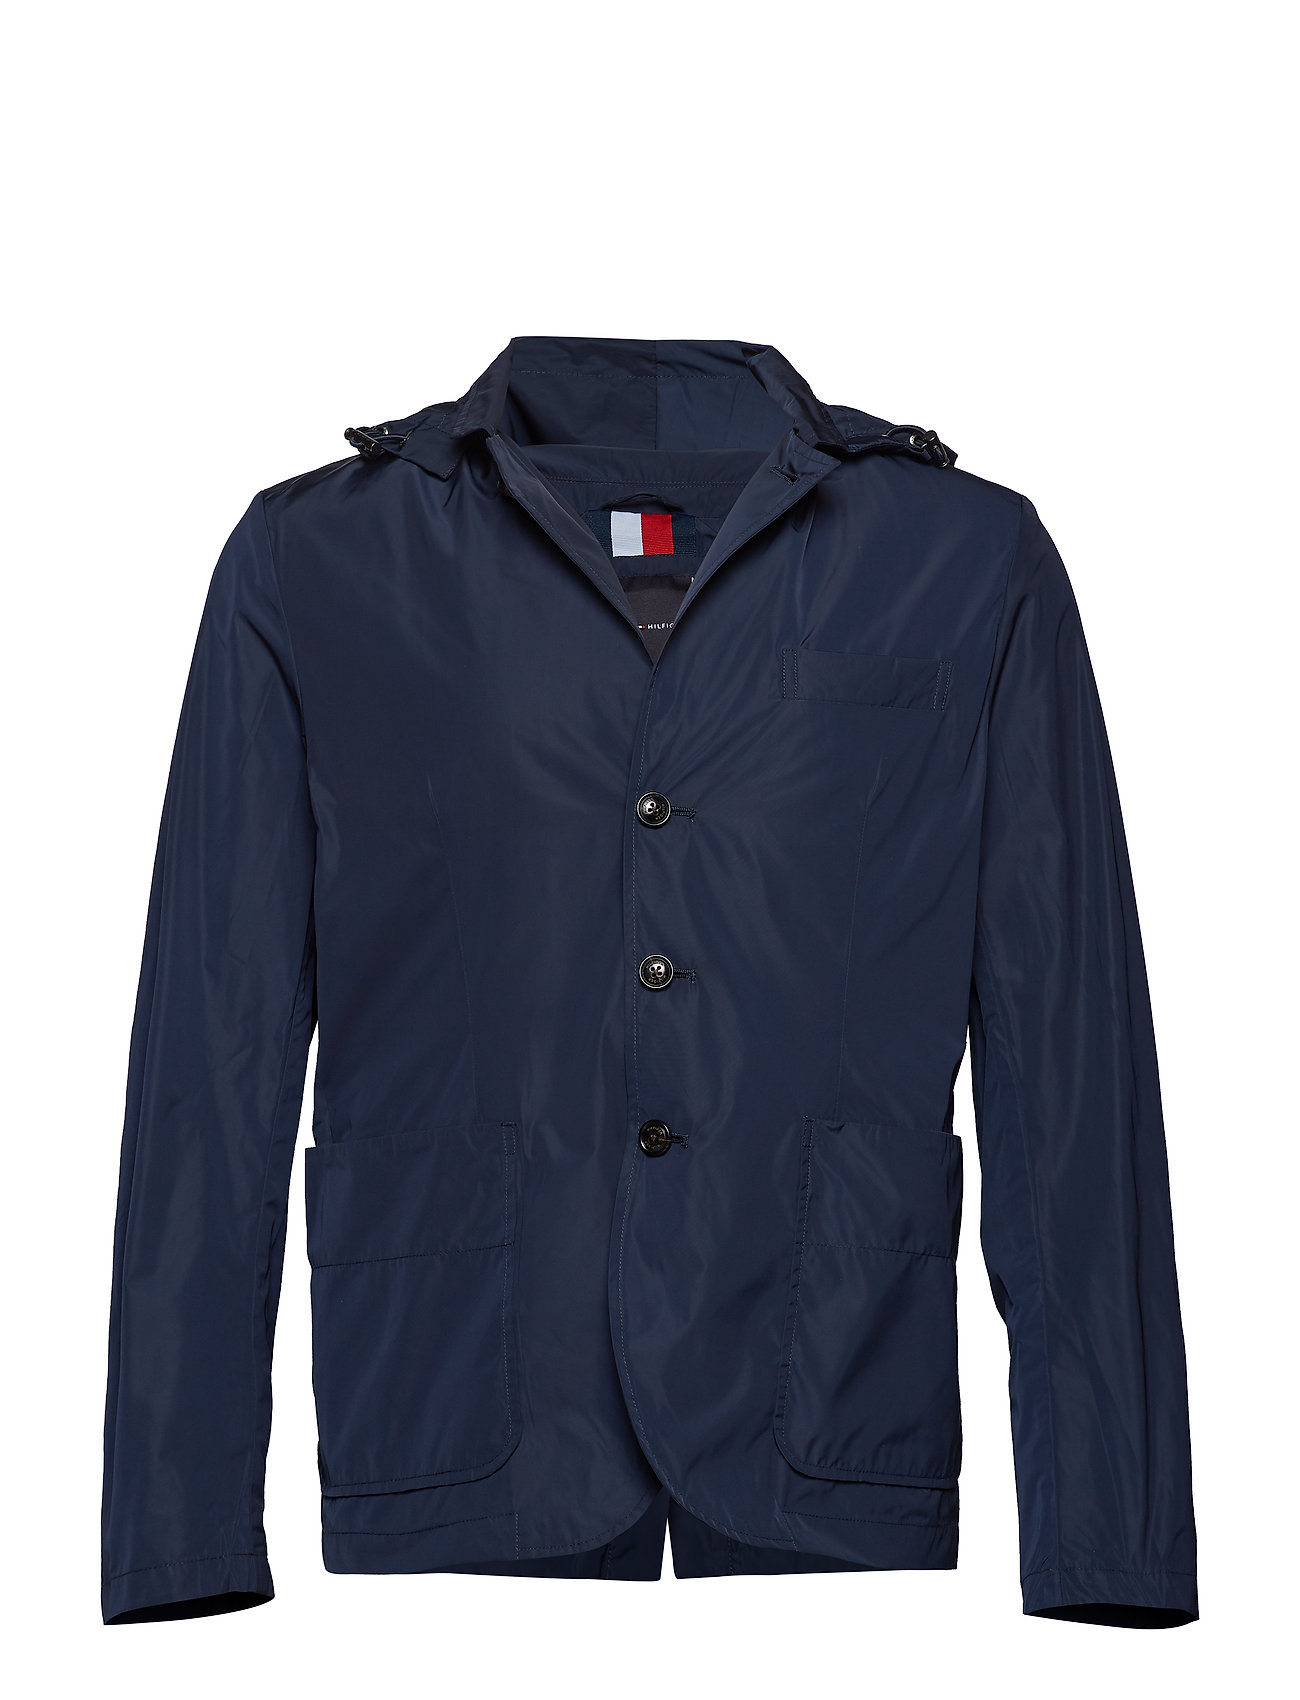 Tommy Hilfiger PACKABLE HOODED BLAZ - SKY CAPTAIN